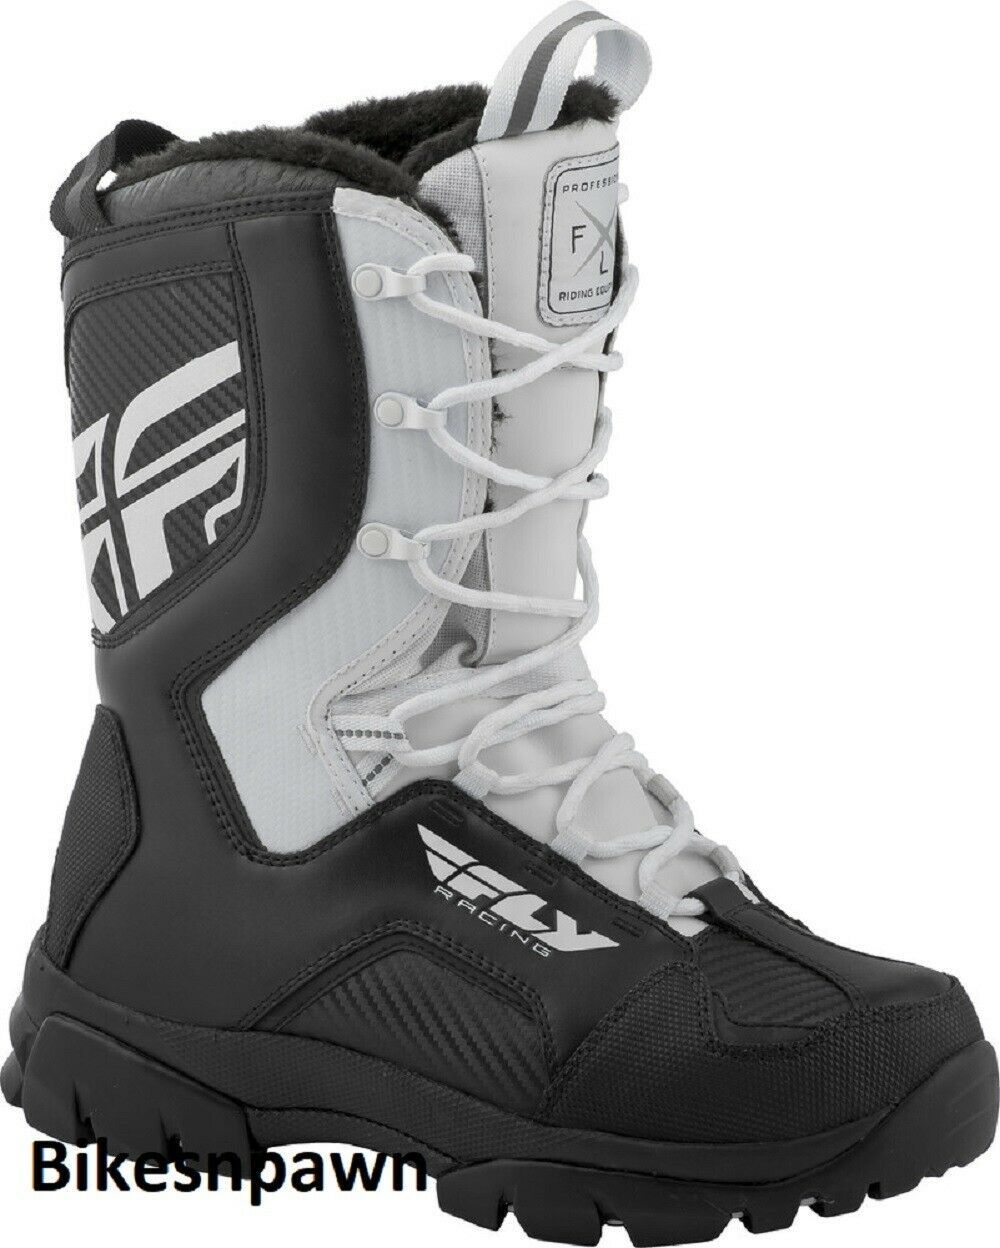 New Mens FLY Racing Marker Black/White Size 7 Snowmobile Winter Snow Boots -40 F